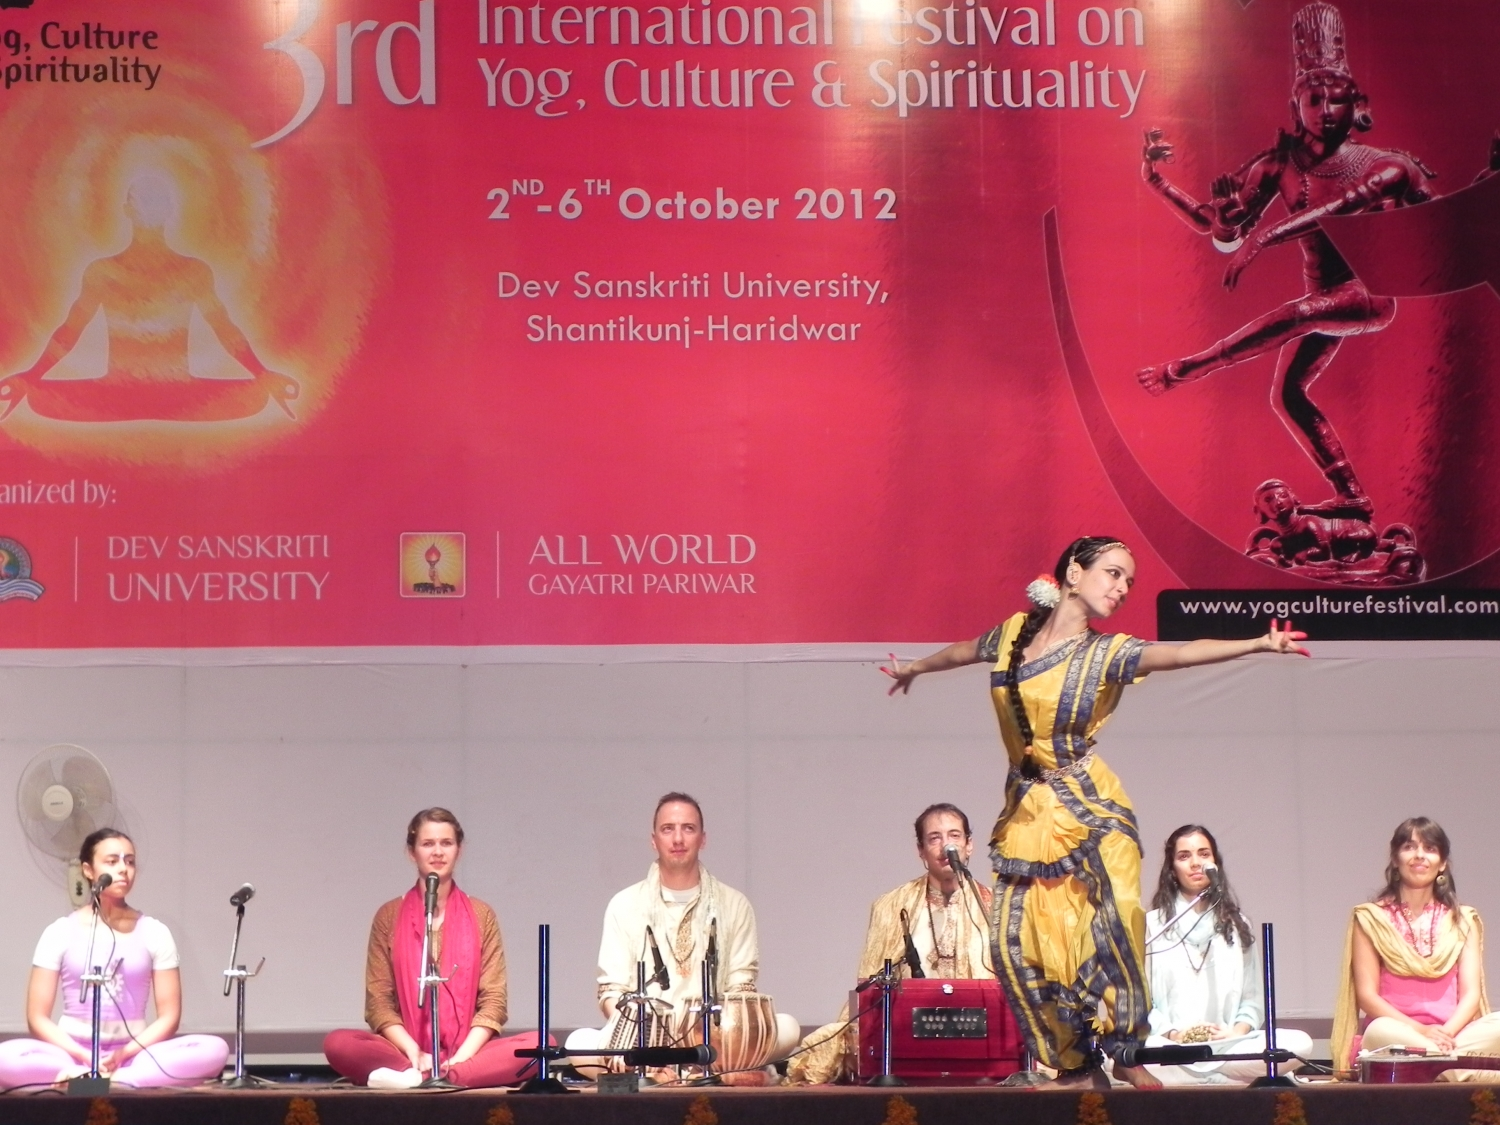 3rd International Festival on Yoga, Culture and Spirituality - Shántikunj Áshrama, Haridvar, 2012